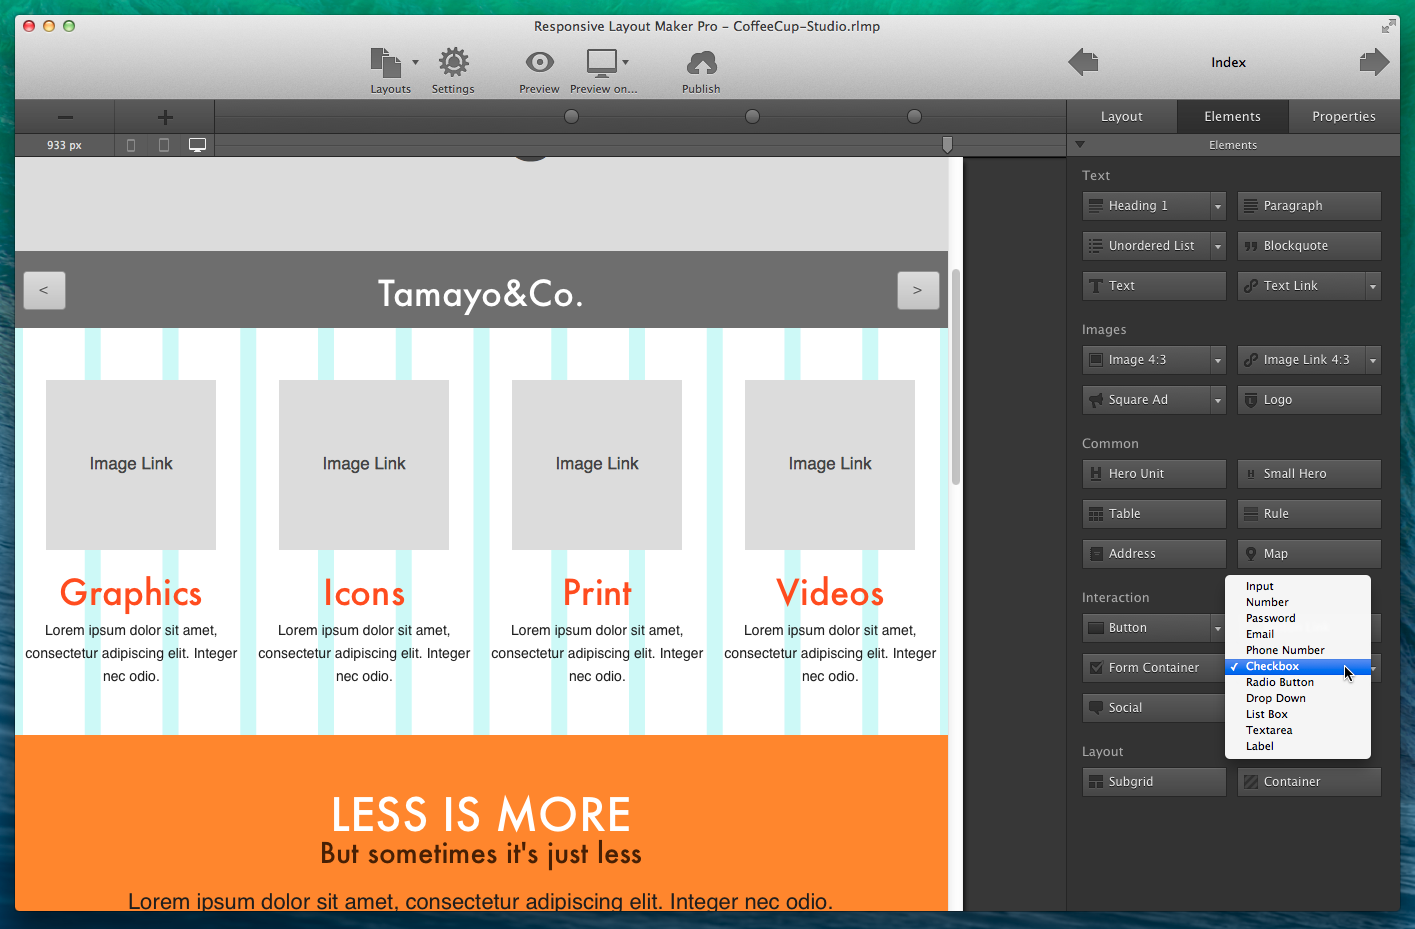 Responsive Layout Maker Pro Main Interface.